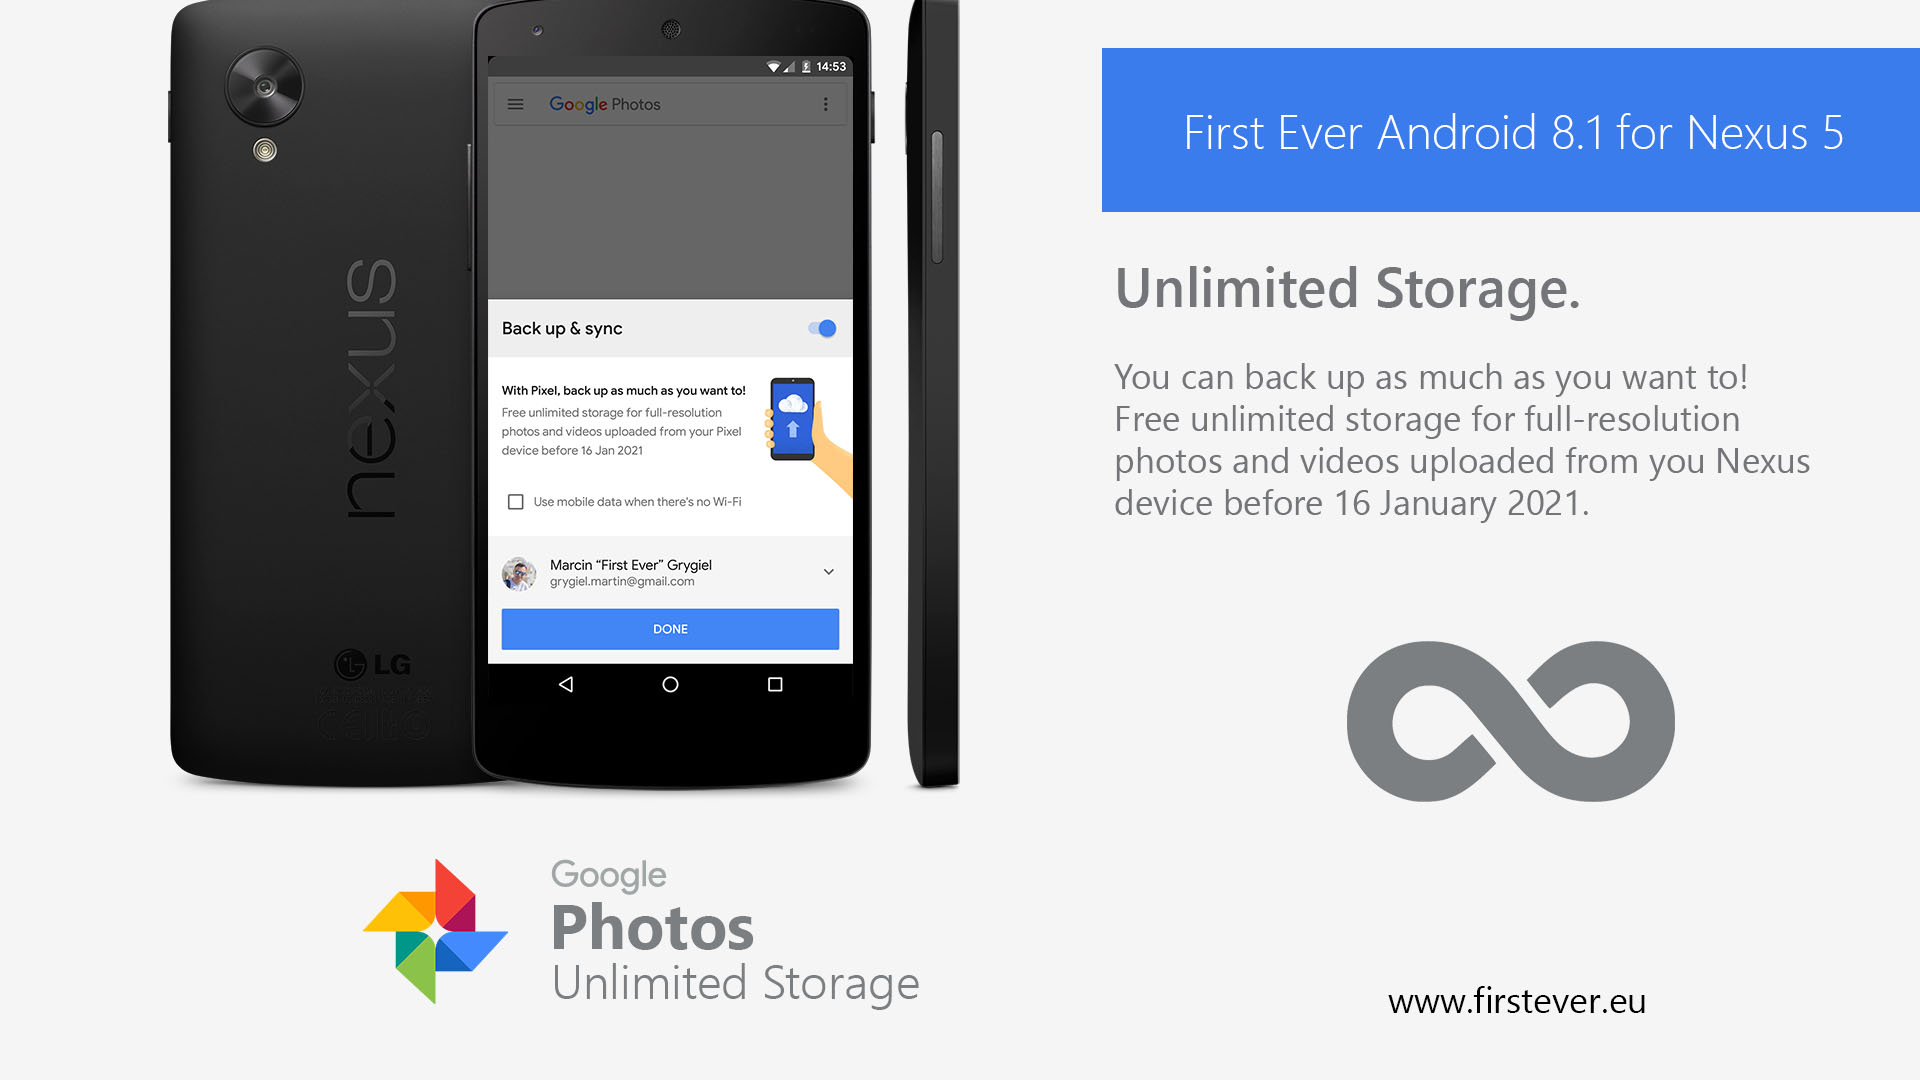 Google Photo Unlimited Storage